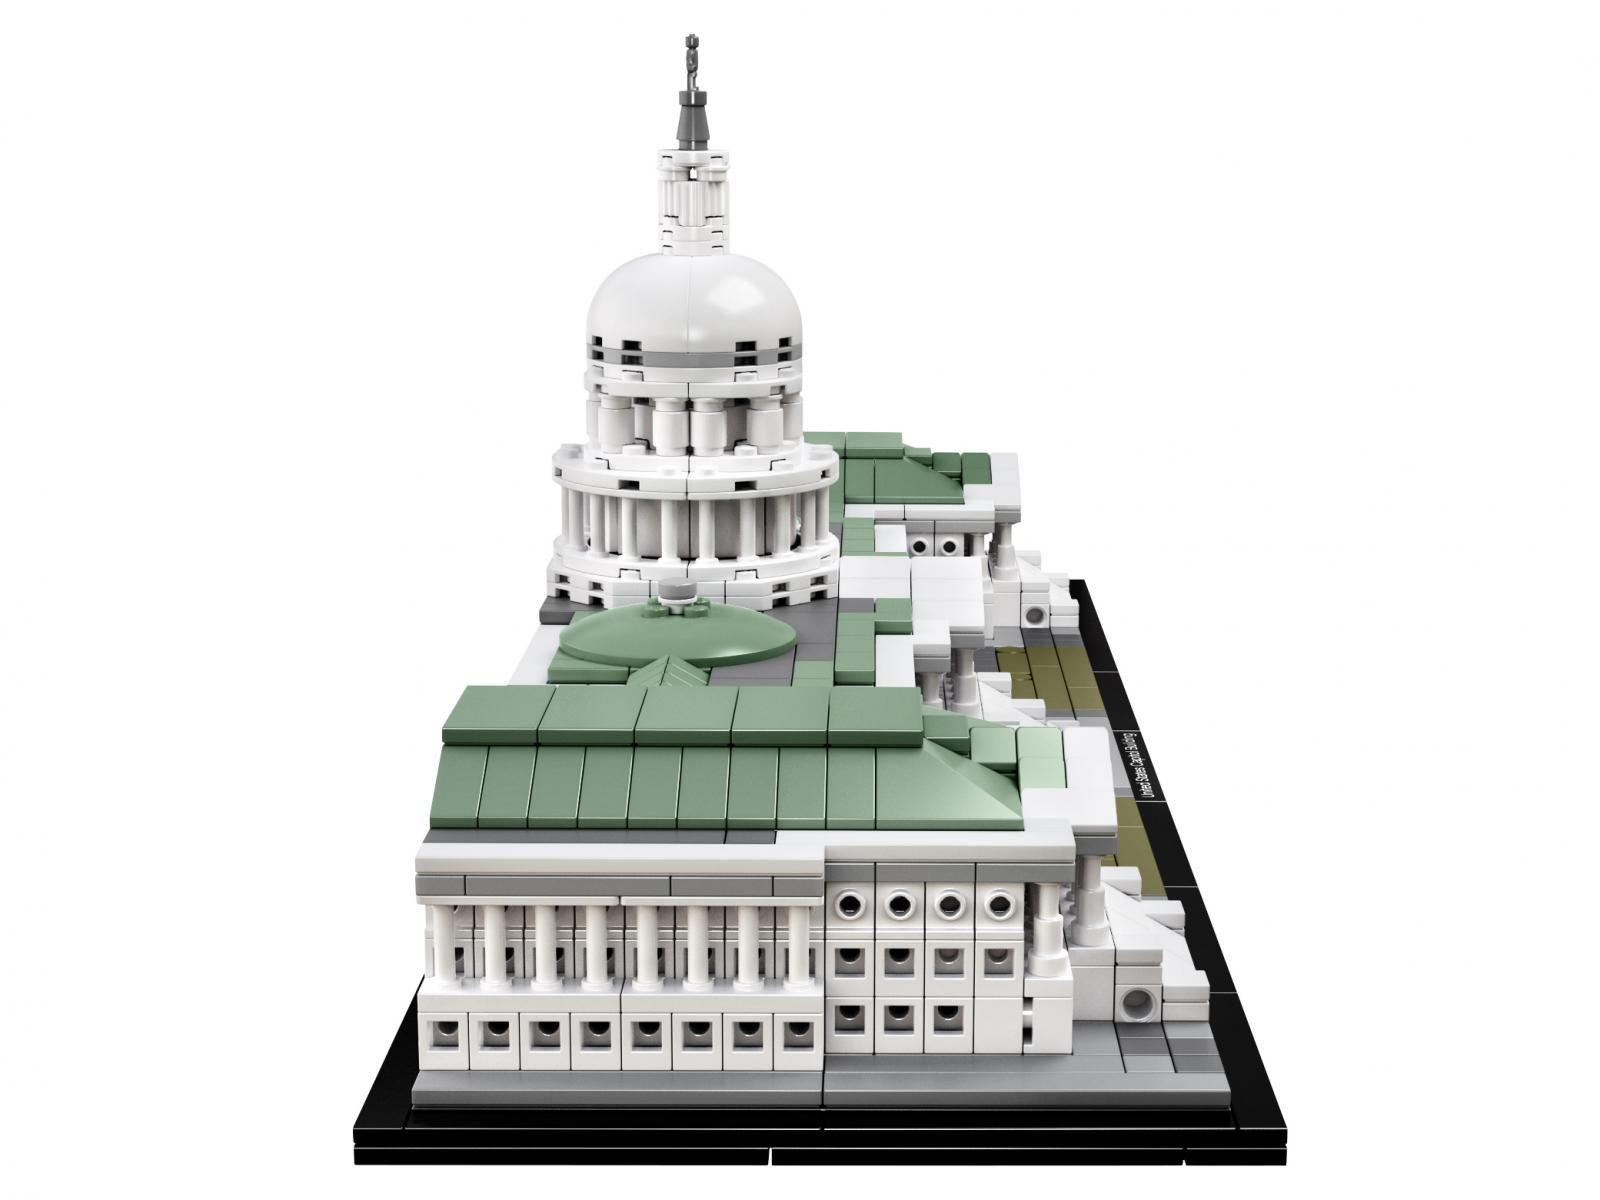 lego architecture capitol building - HD 2081×1561